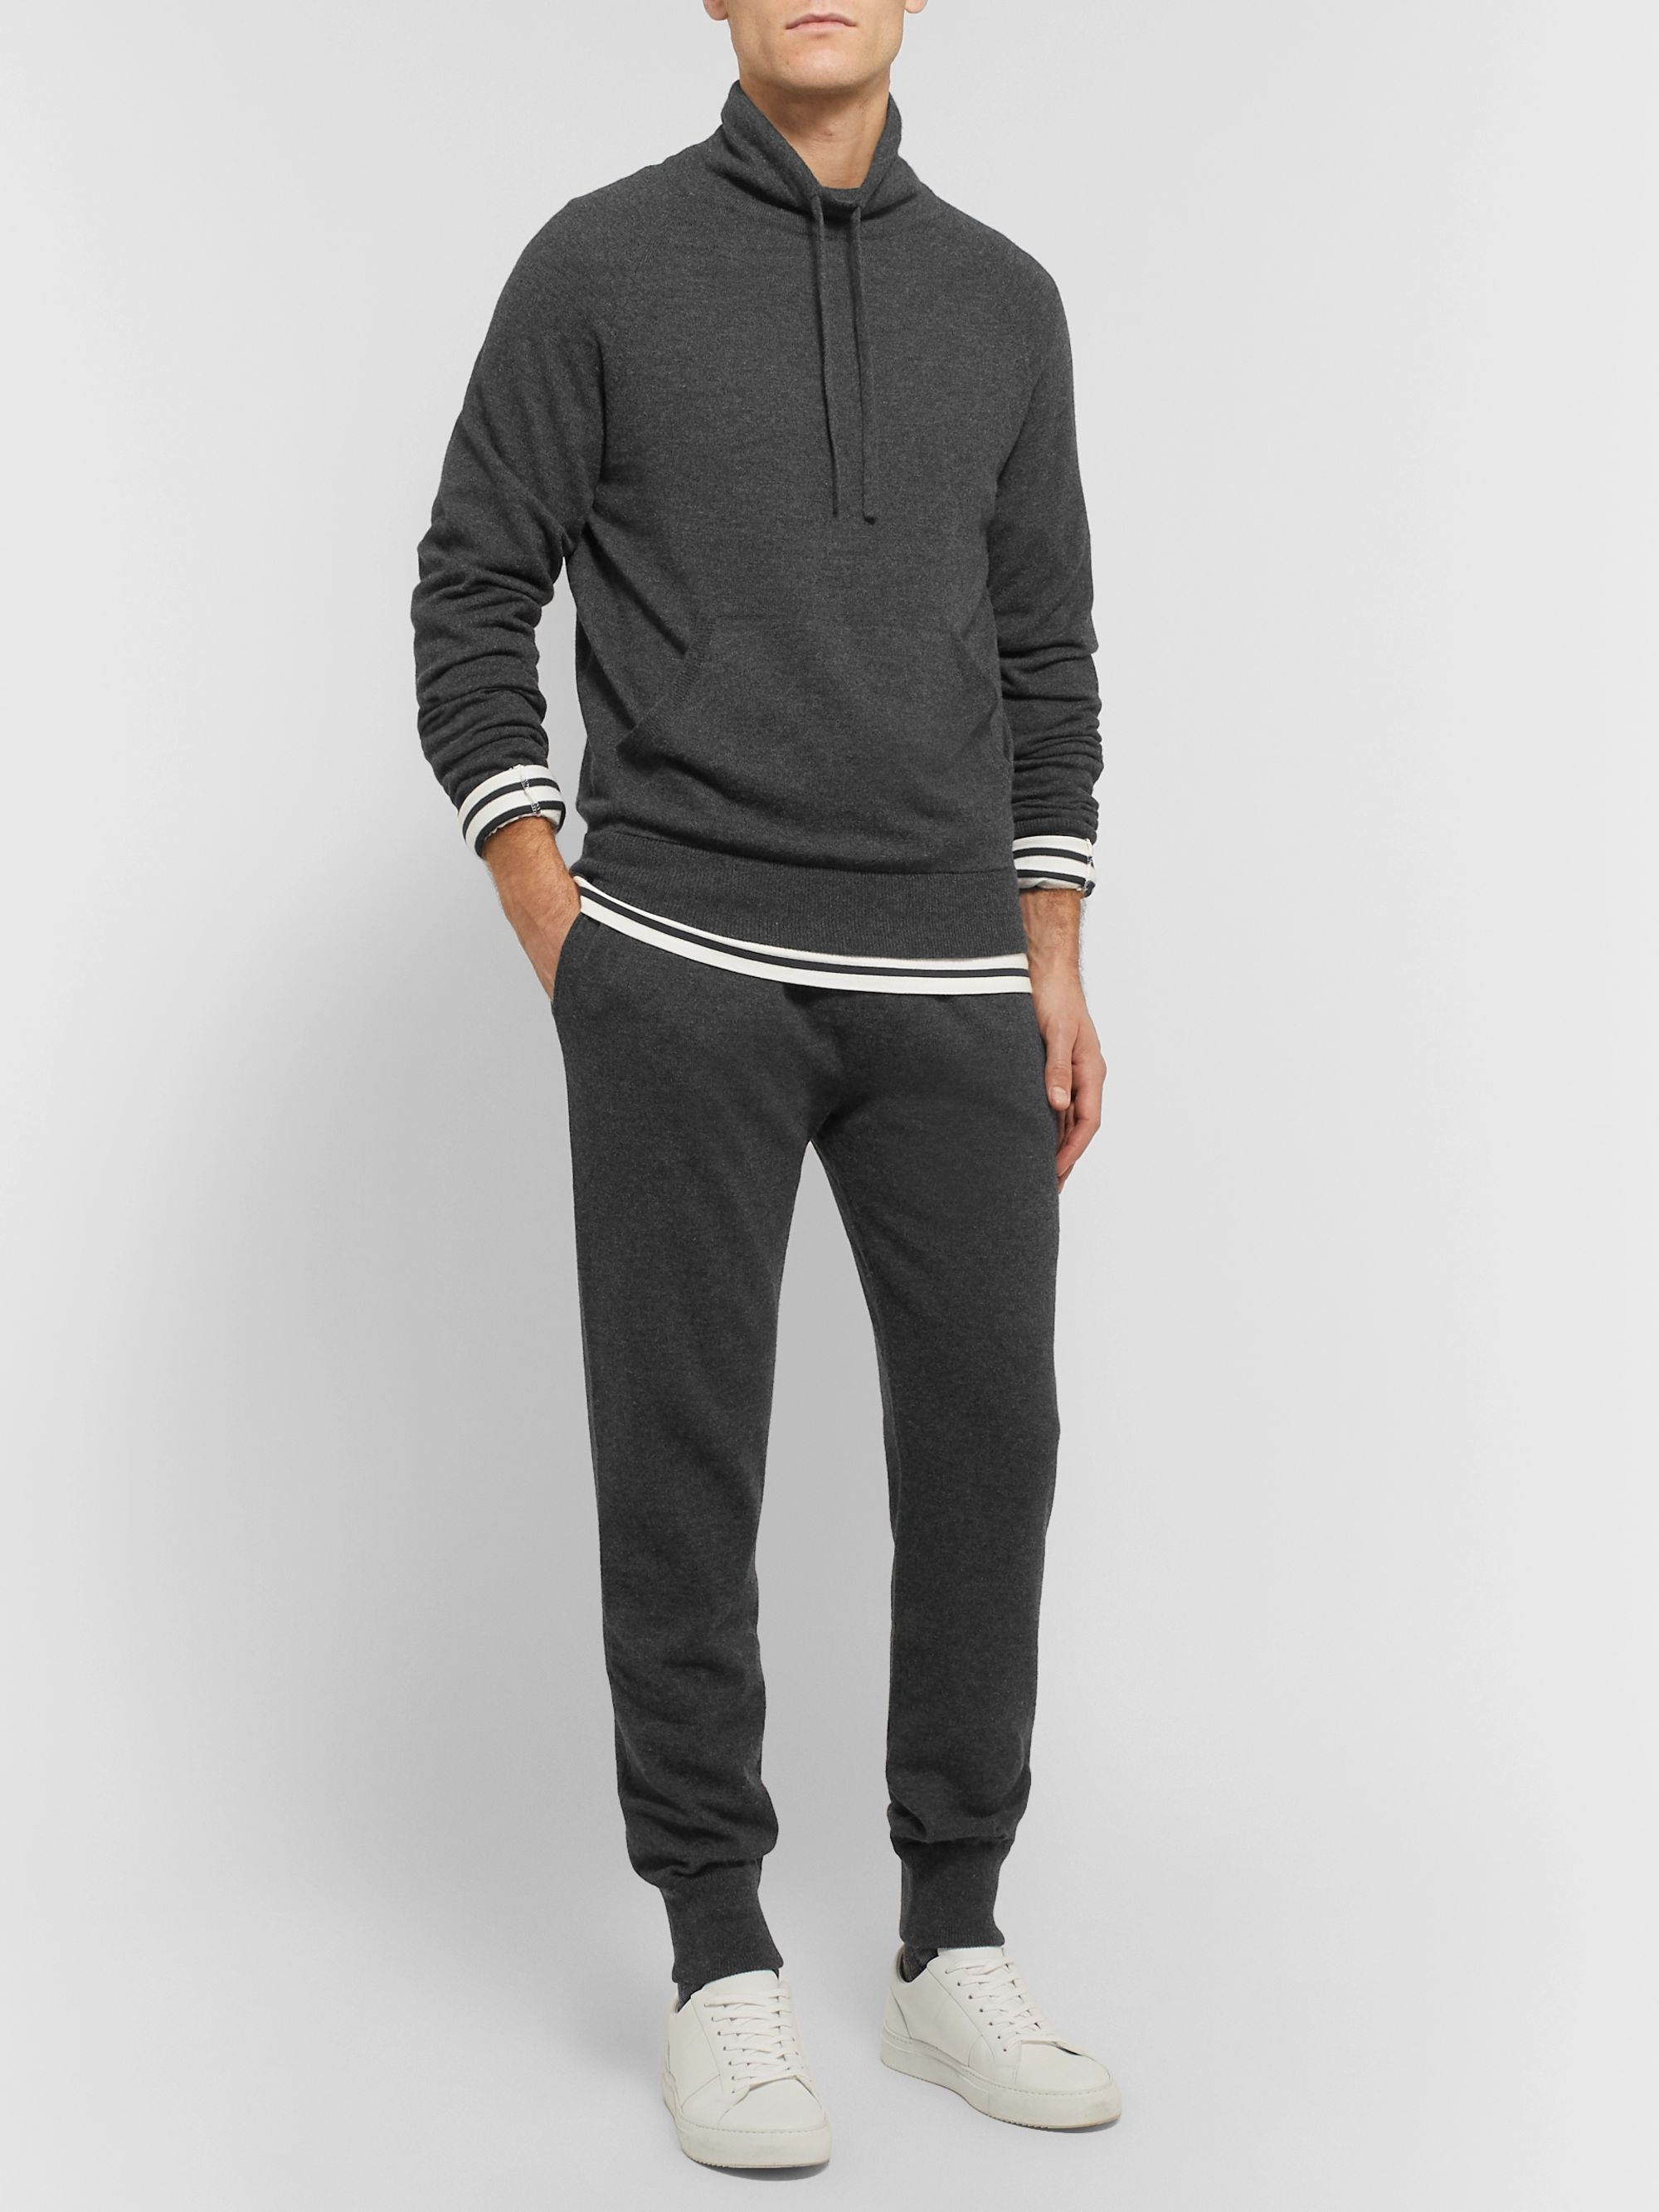 Mr P. Slim-Fit Tapered Mélange Wool and Cashmere-Blend Sweatpants